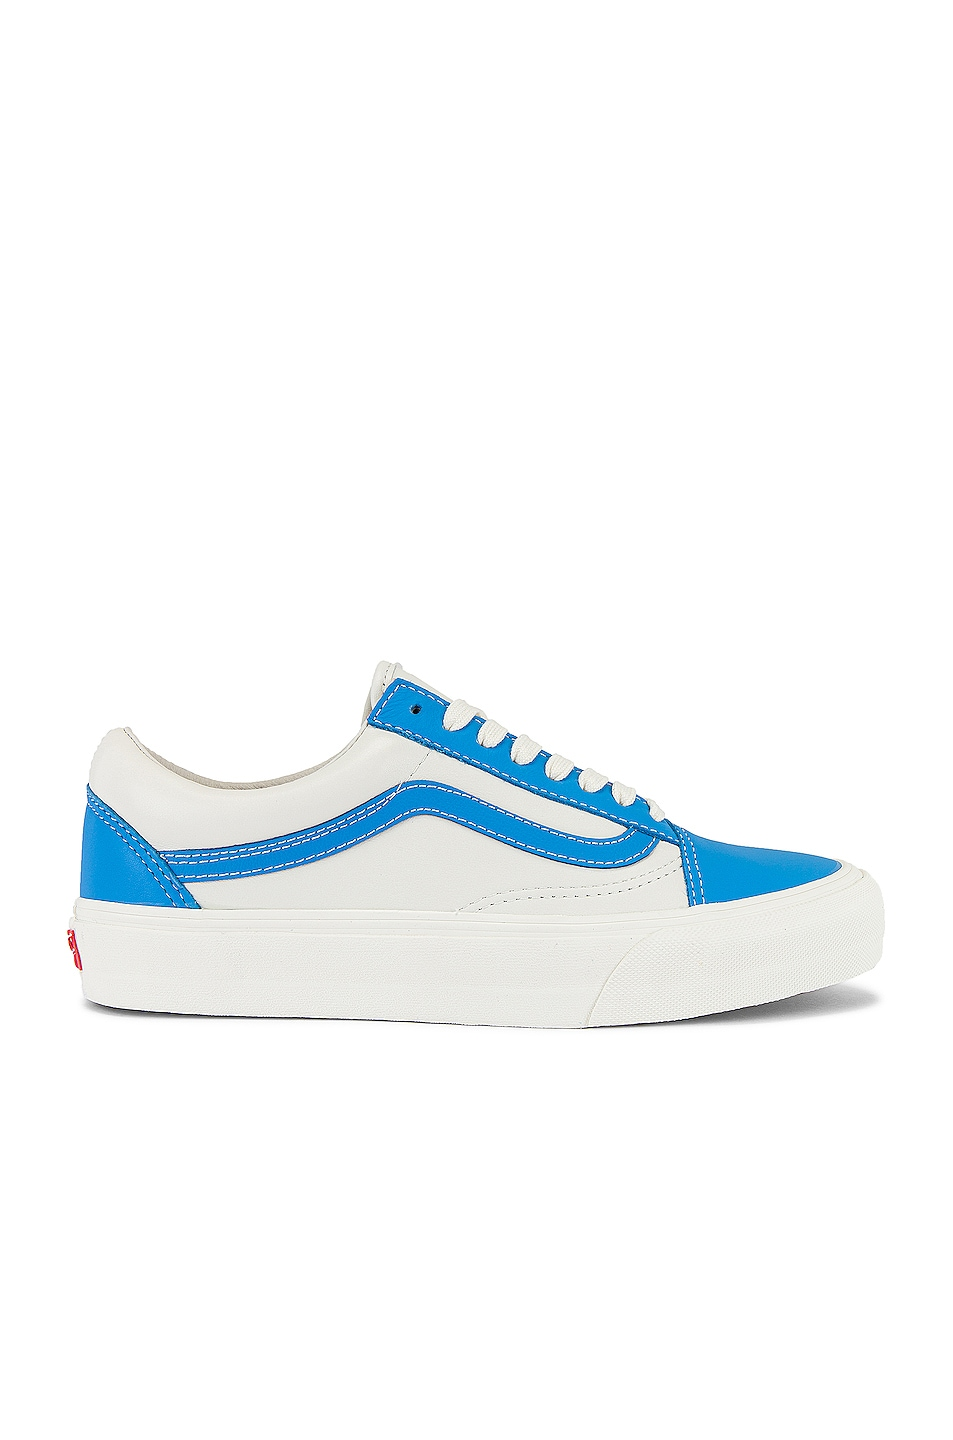 Image 1 of Vans Vault Old Skool VLT LX in Bonnie Blue & Marshmallow